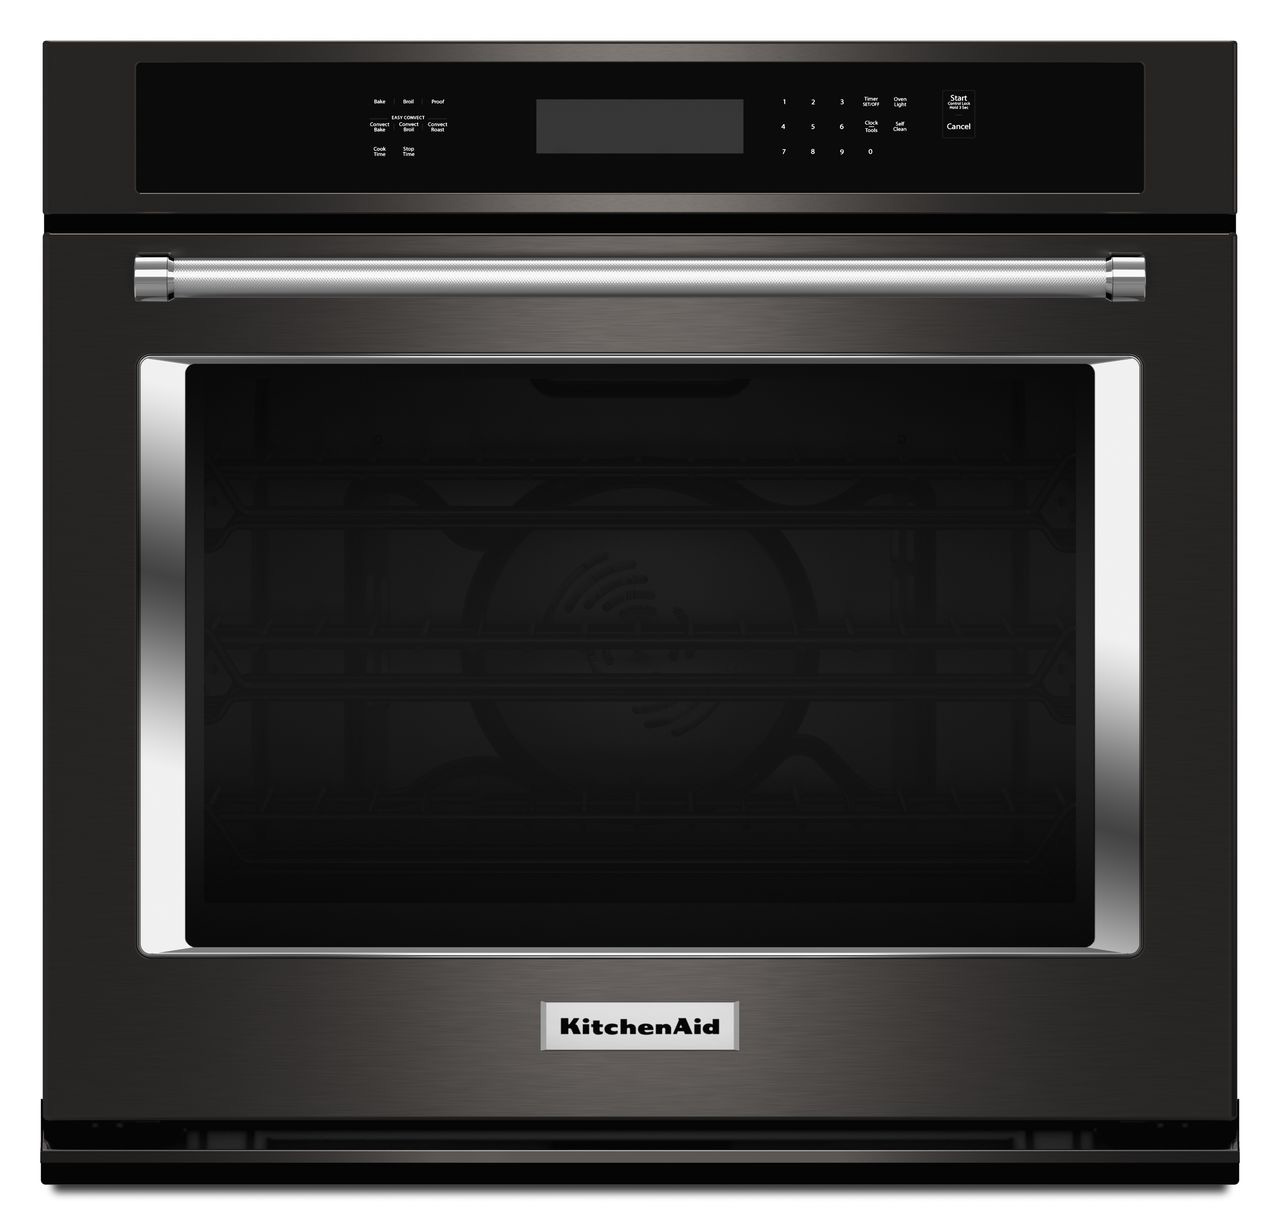 Kitchenaid Bold Black Stainless: KitchenAid Black Stainless Single Wall Oven